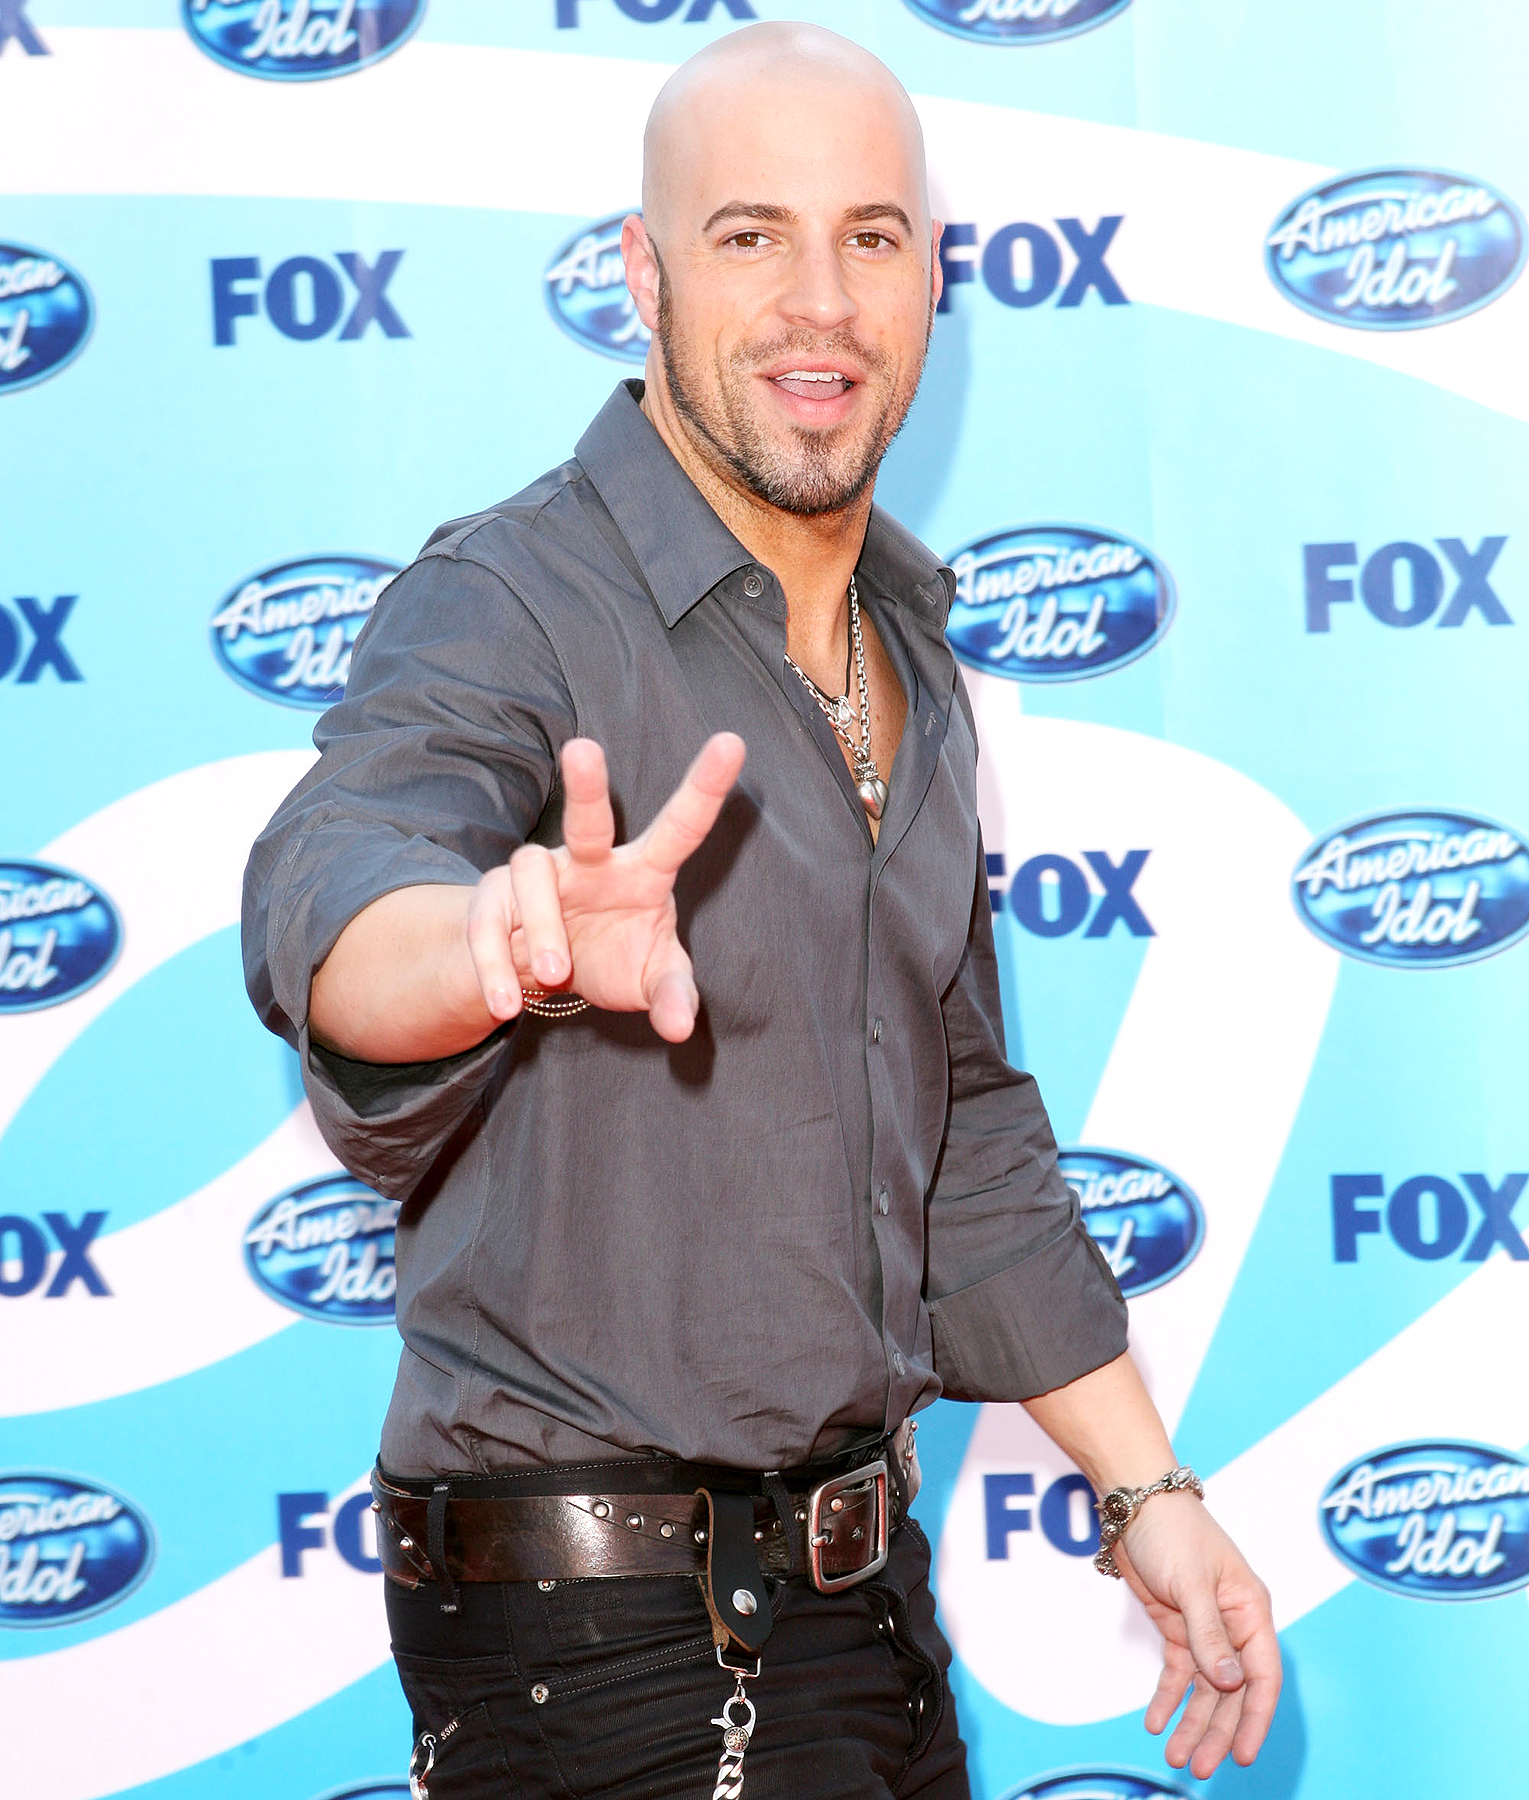 Chris Daughtry arrives at the American Idol Season 8 Grand Finale held at Nokia Theatre L.A. Live on May 20, 2009 in Los Angeles, California.